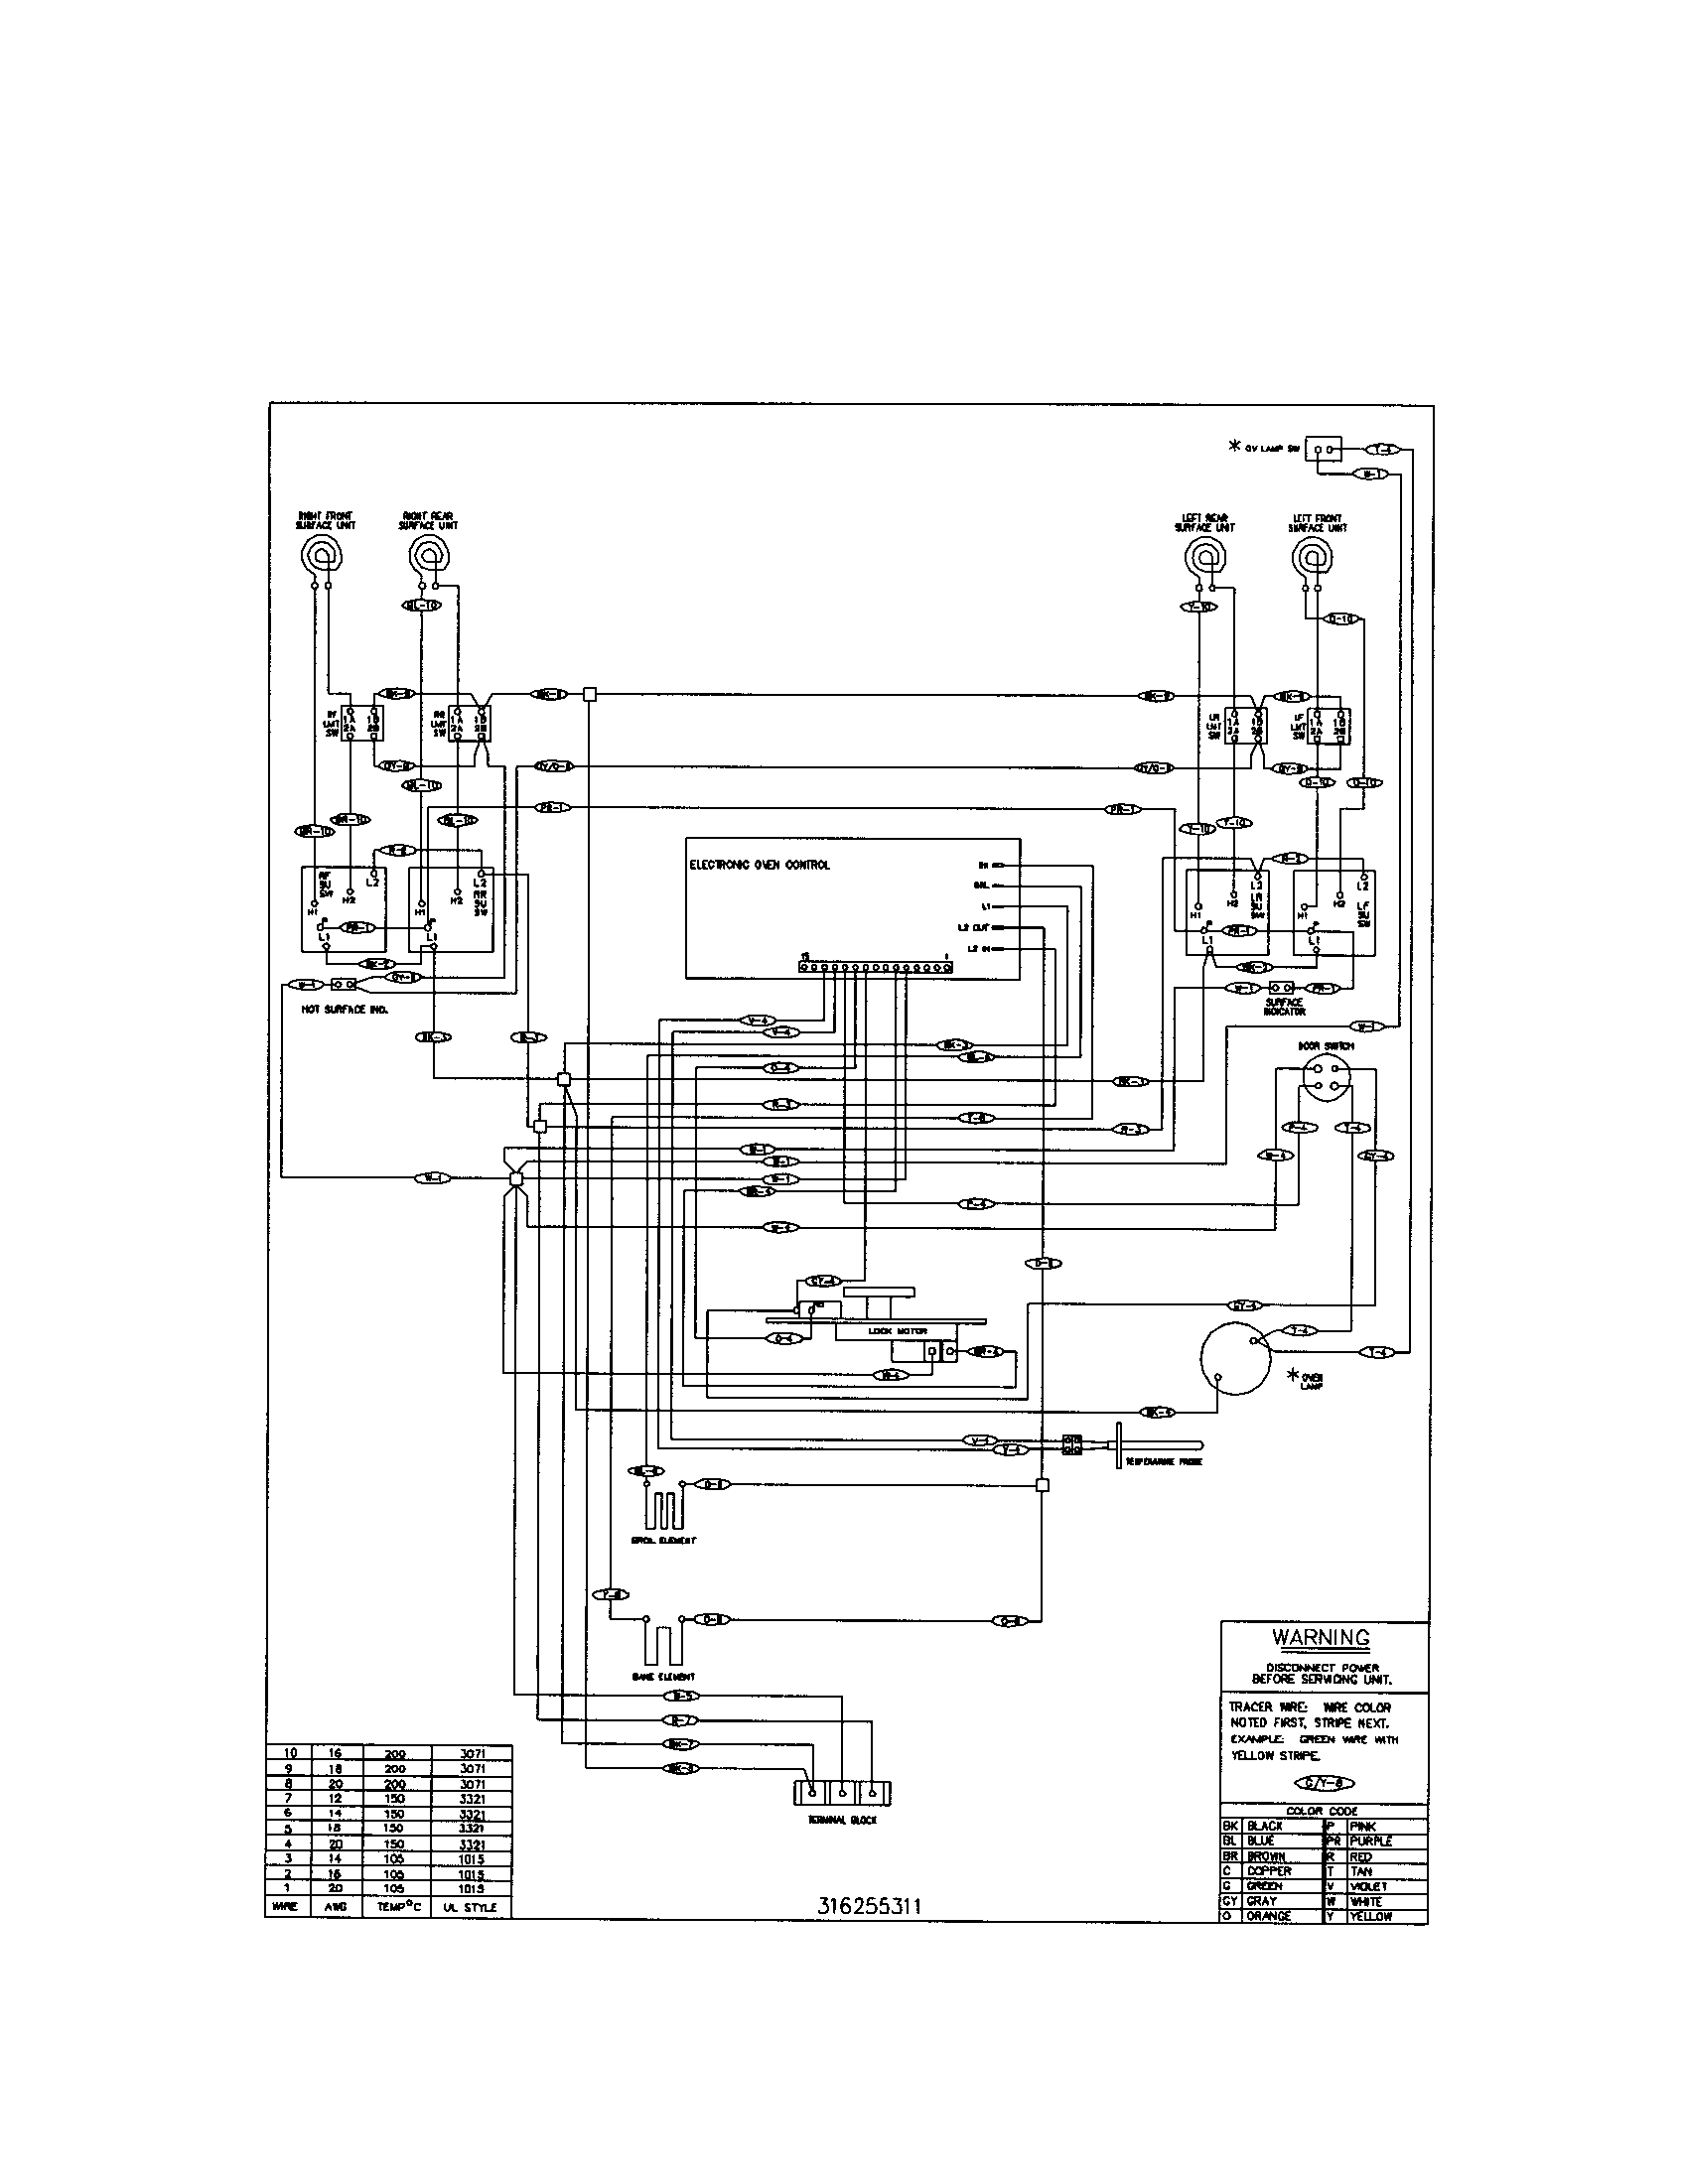 wire diagram for kenmore elite 790 wall oven